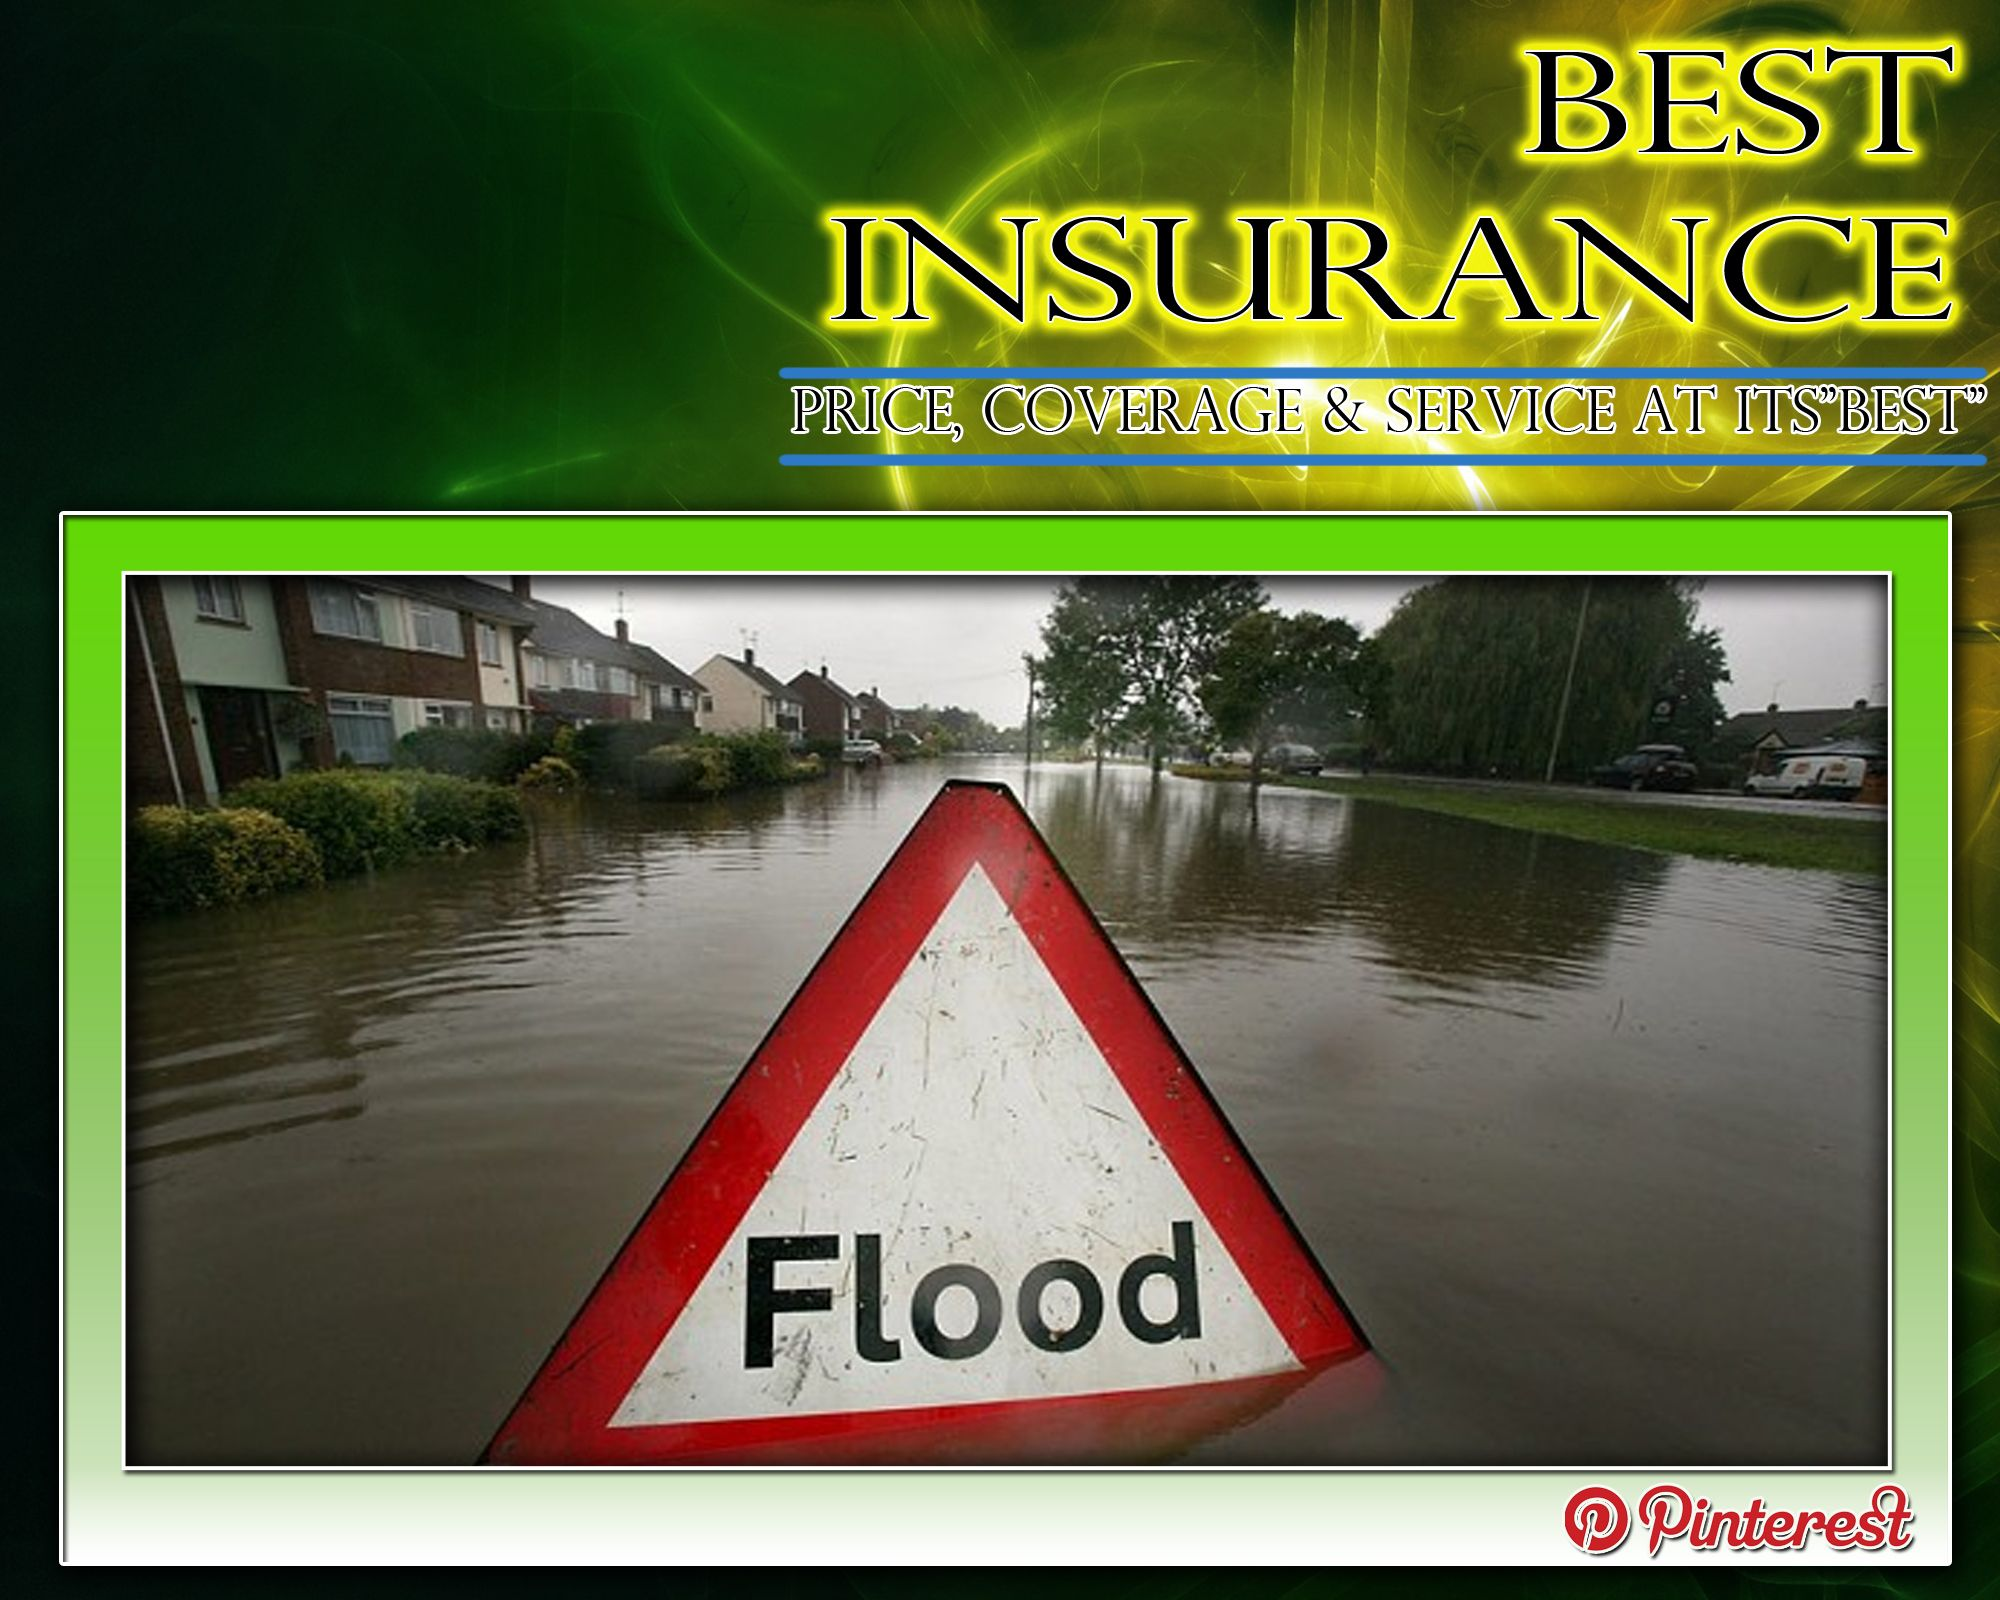 Flood insurance for renters in florida